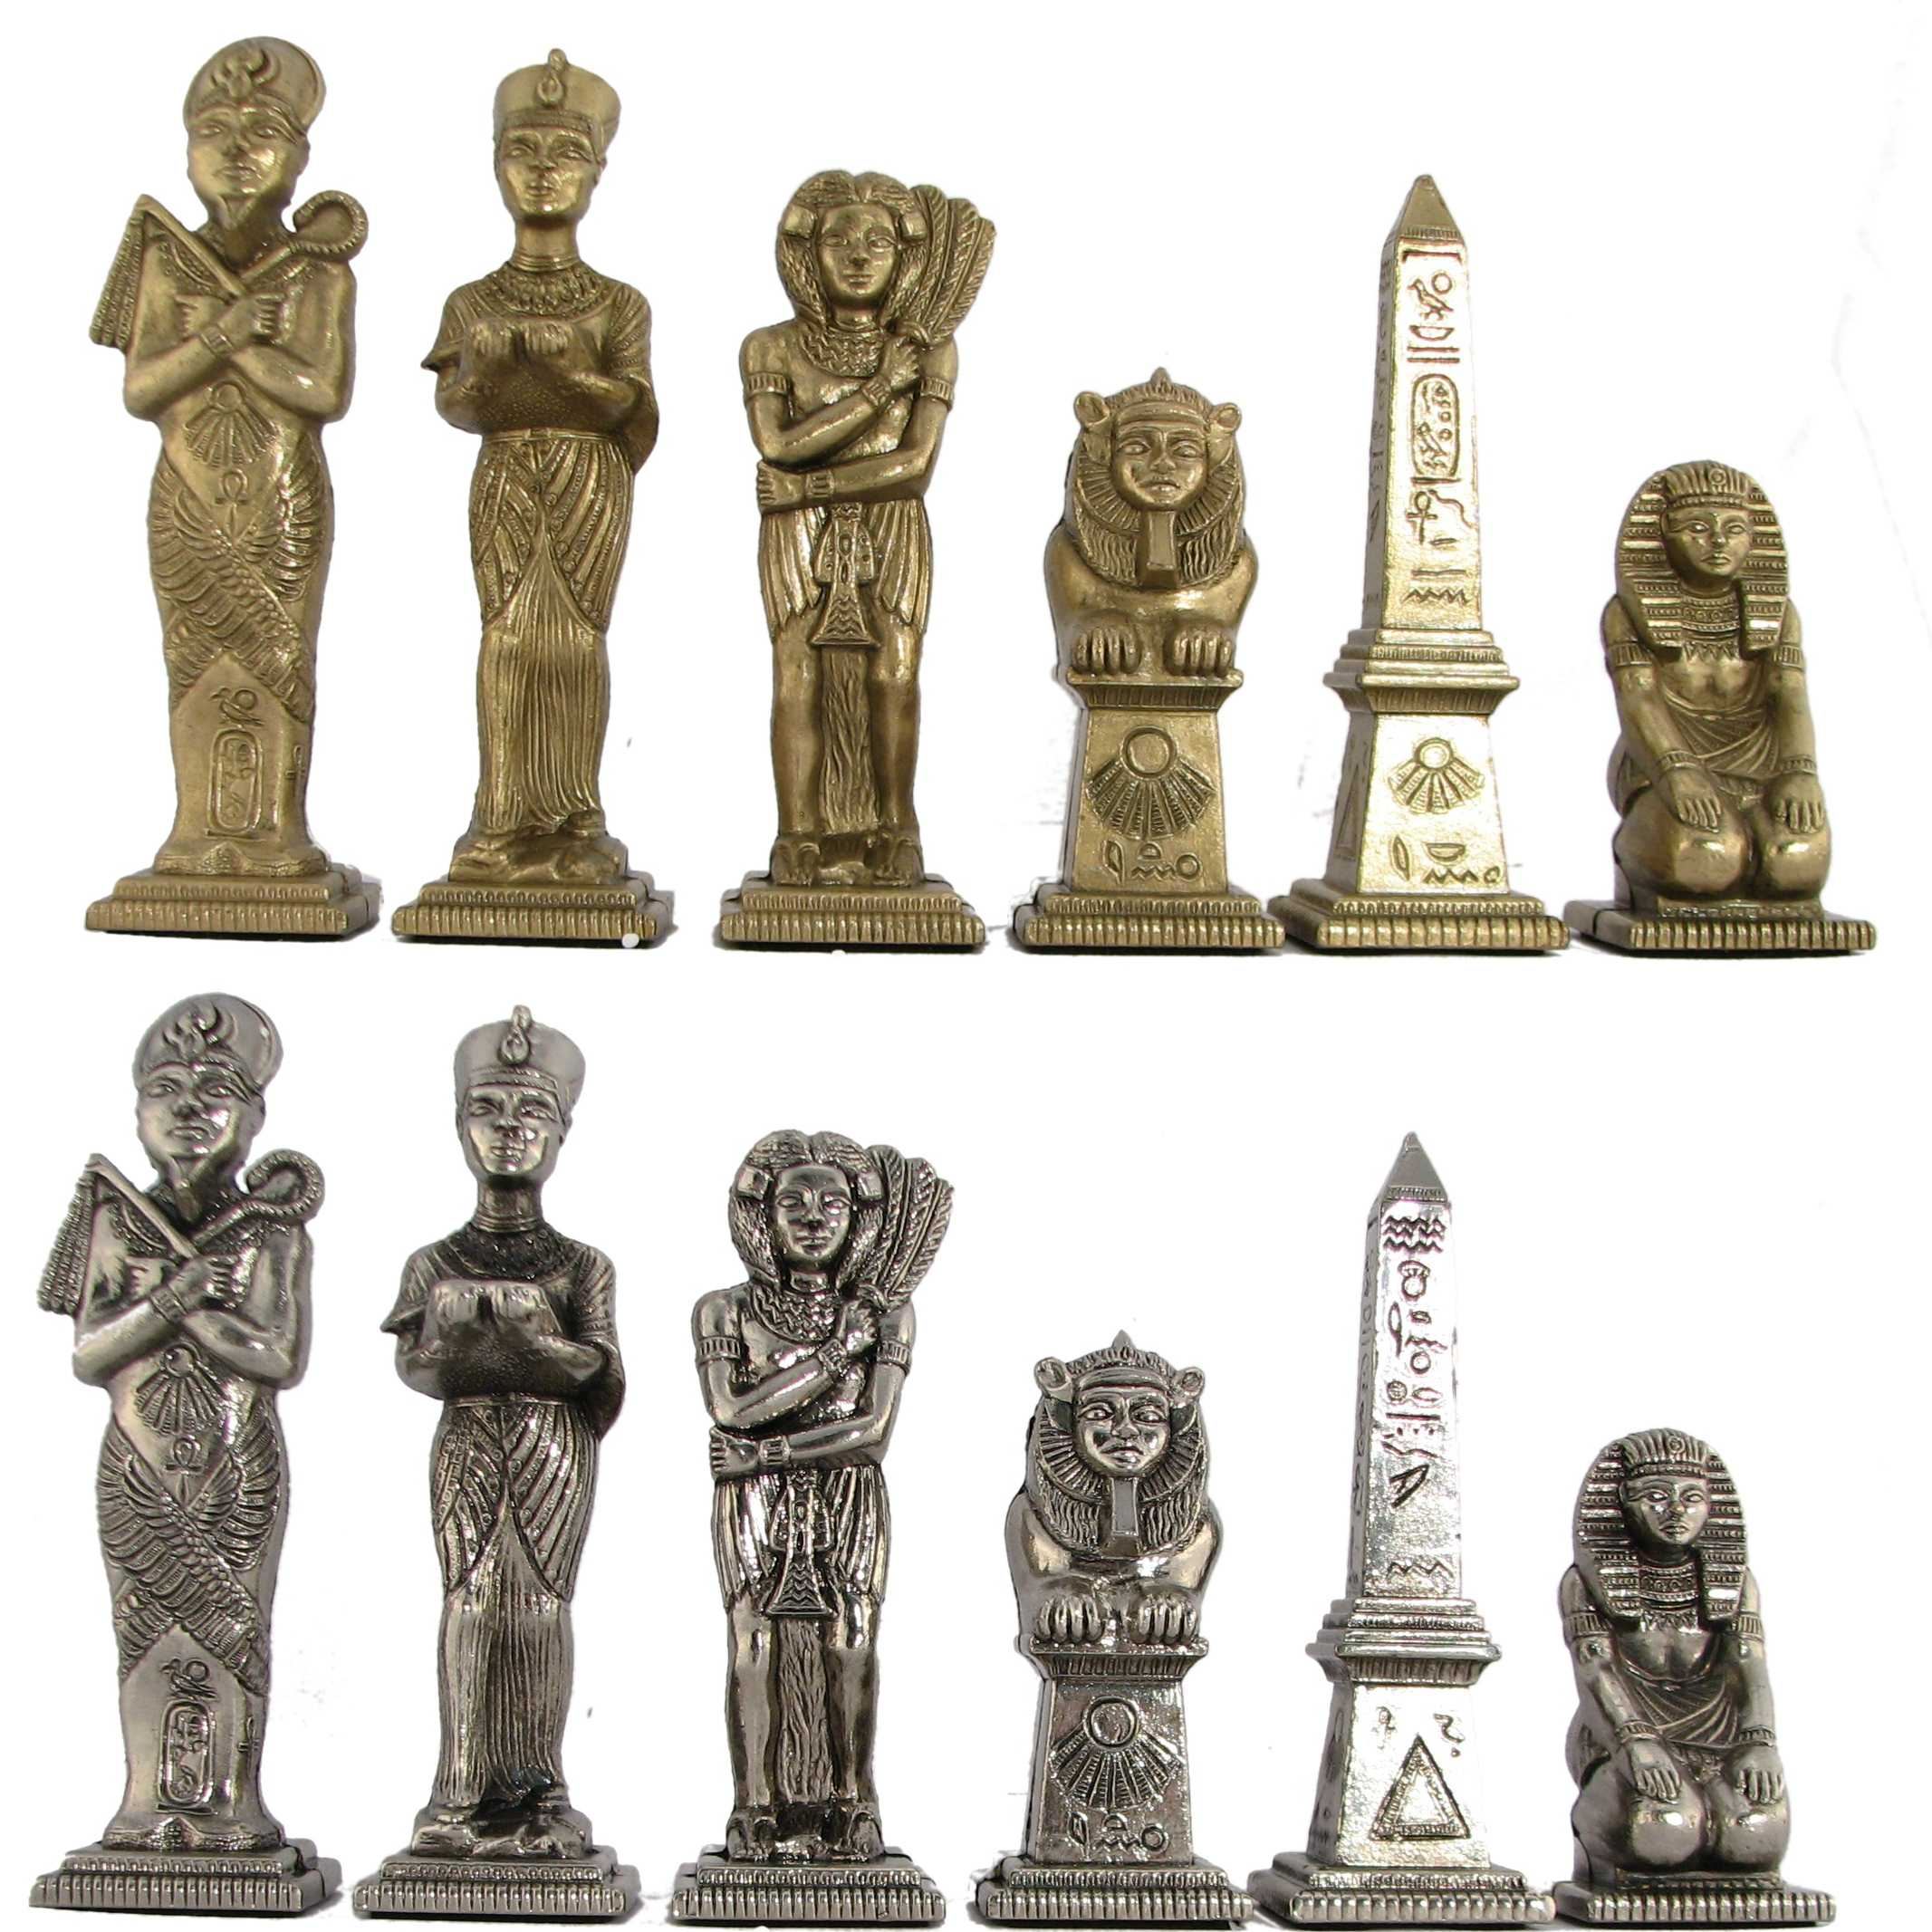 Steel Chess Pieces Ultraweight Egyptian Theme Metal Chess Pieces